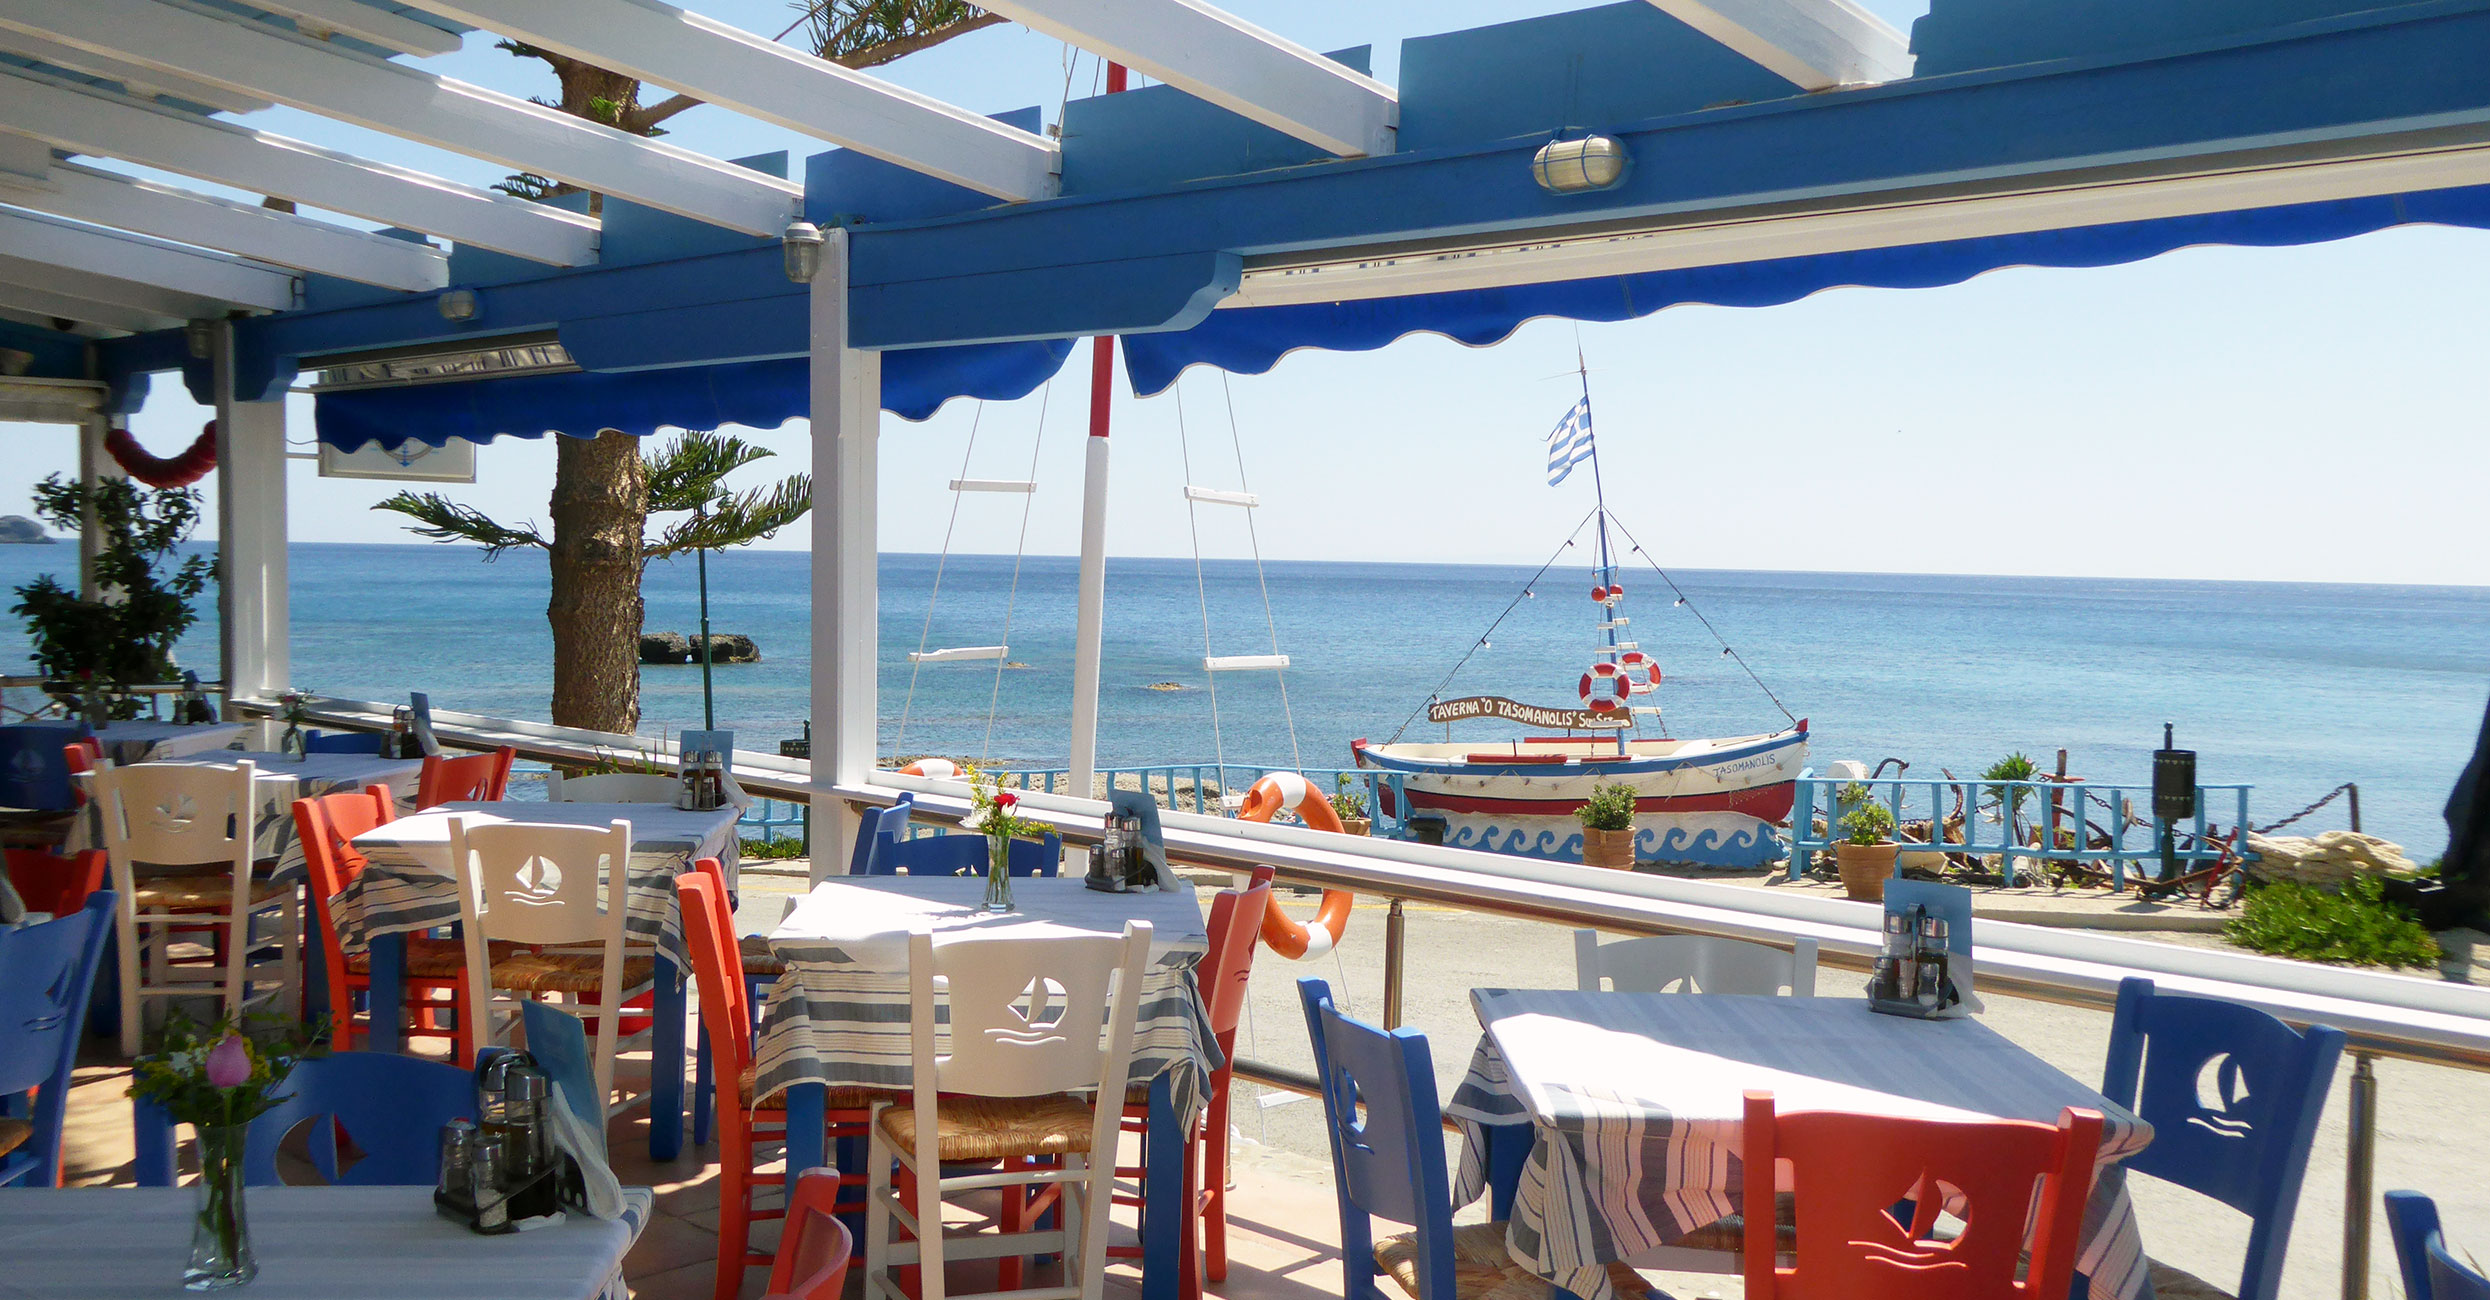 Taverna Tasomanolis Plakias Rethymno Crete Authentic Cretan kitchen